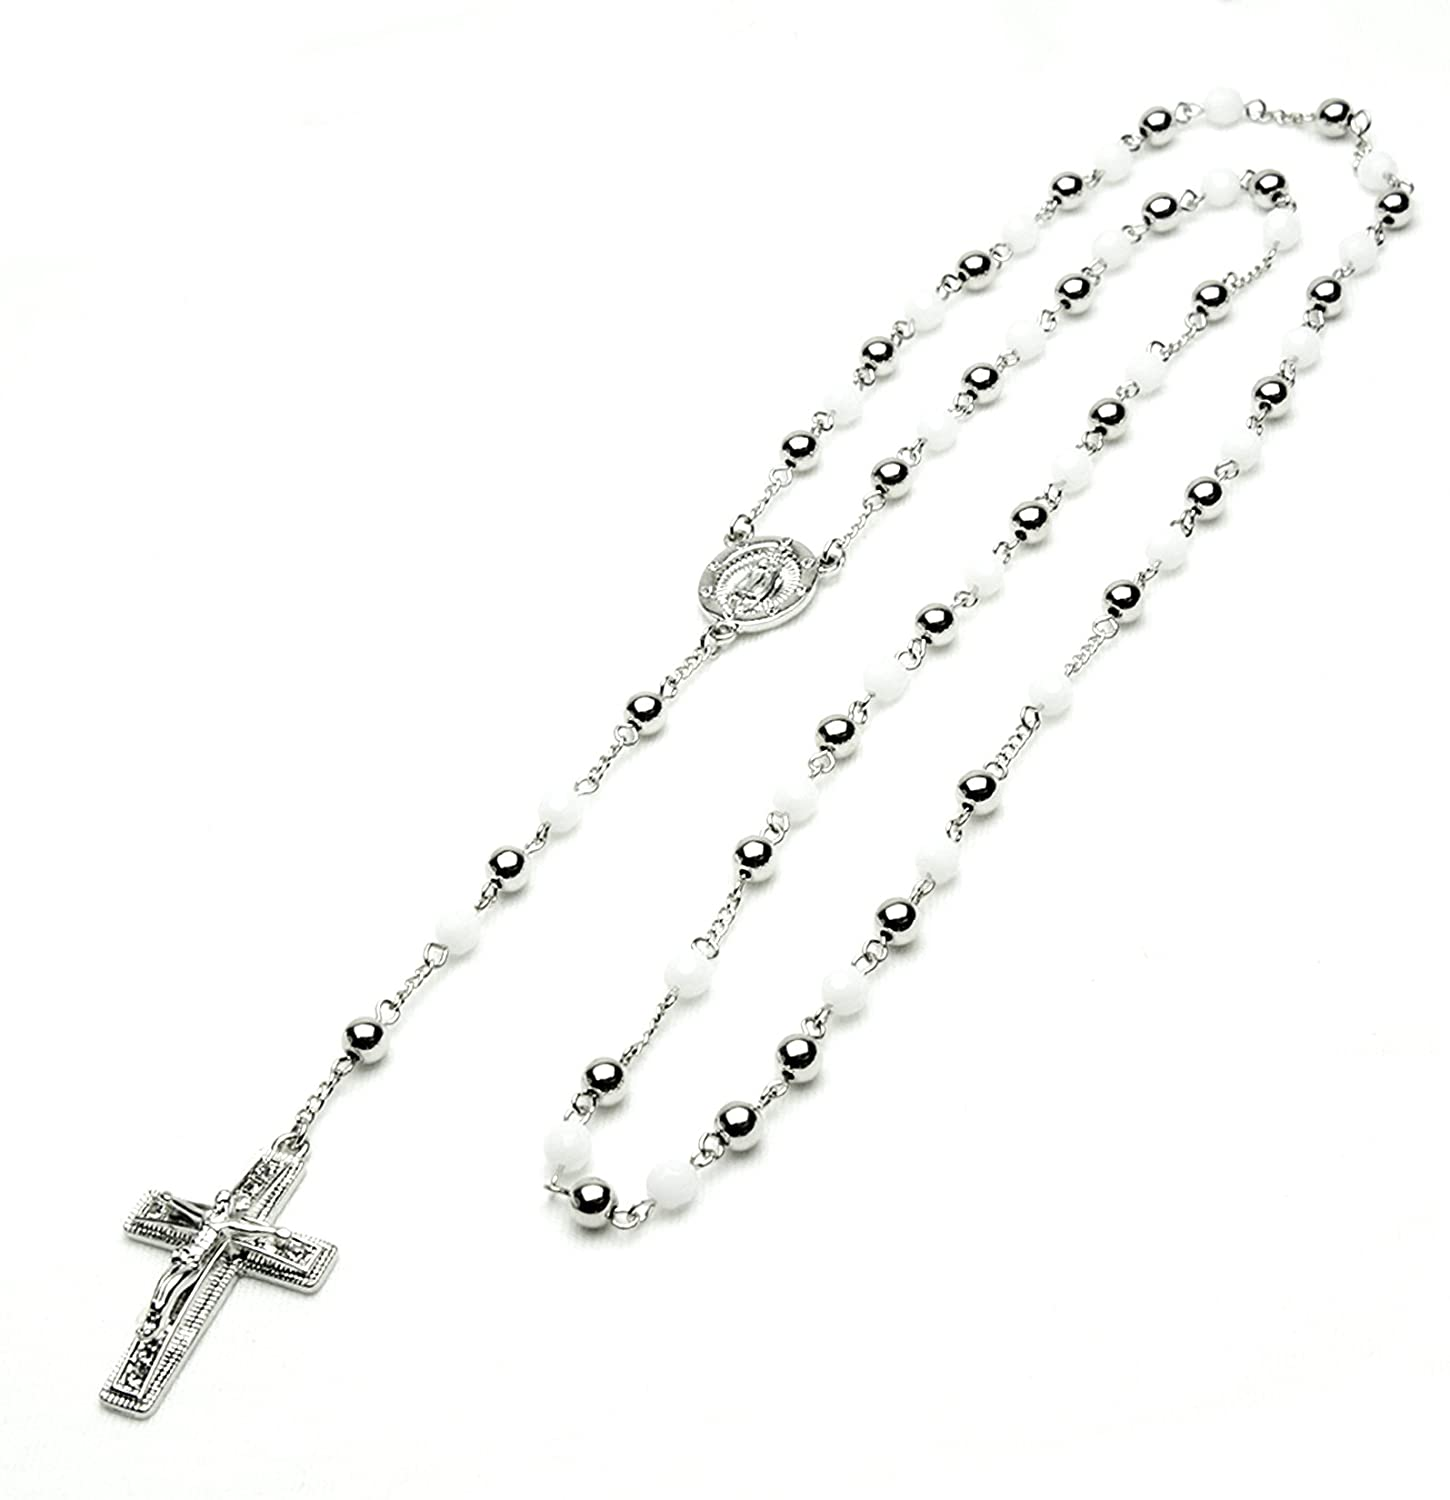 metaltree98 Unisex Fashion Rosary Silver White Bead Guadalupe & Jesus Cross 28 Rosary Necklace HR 600 SSWH